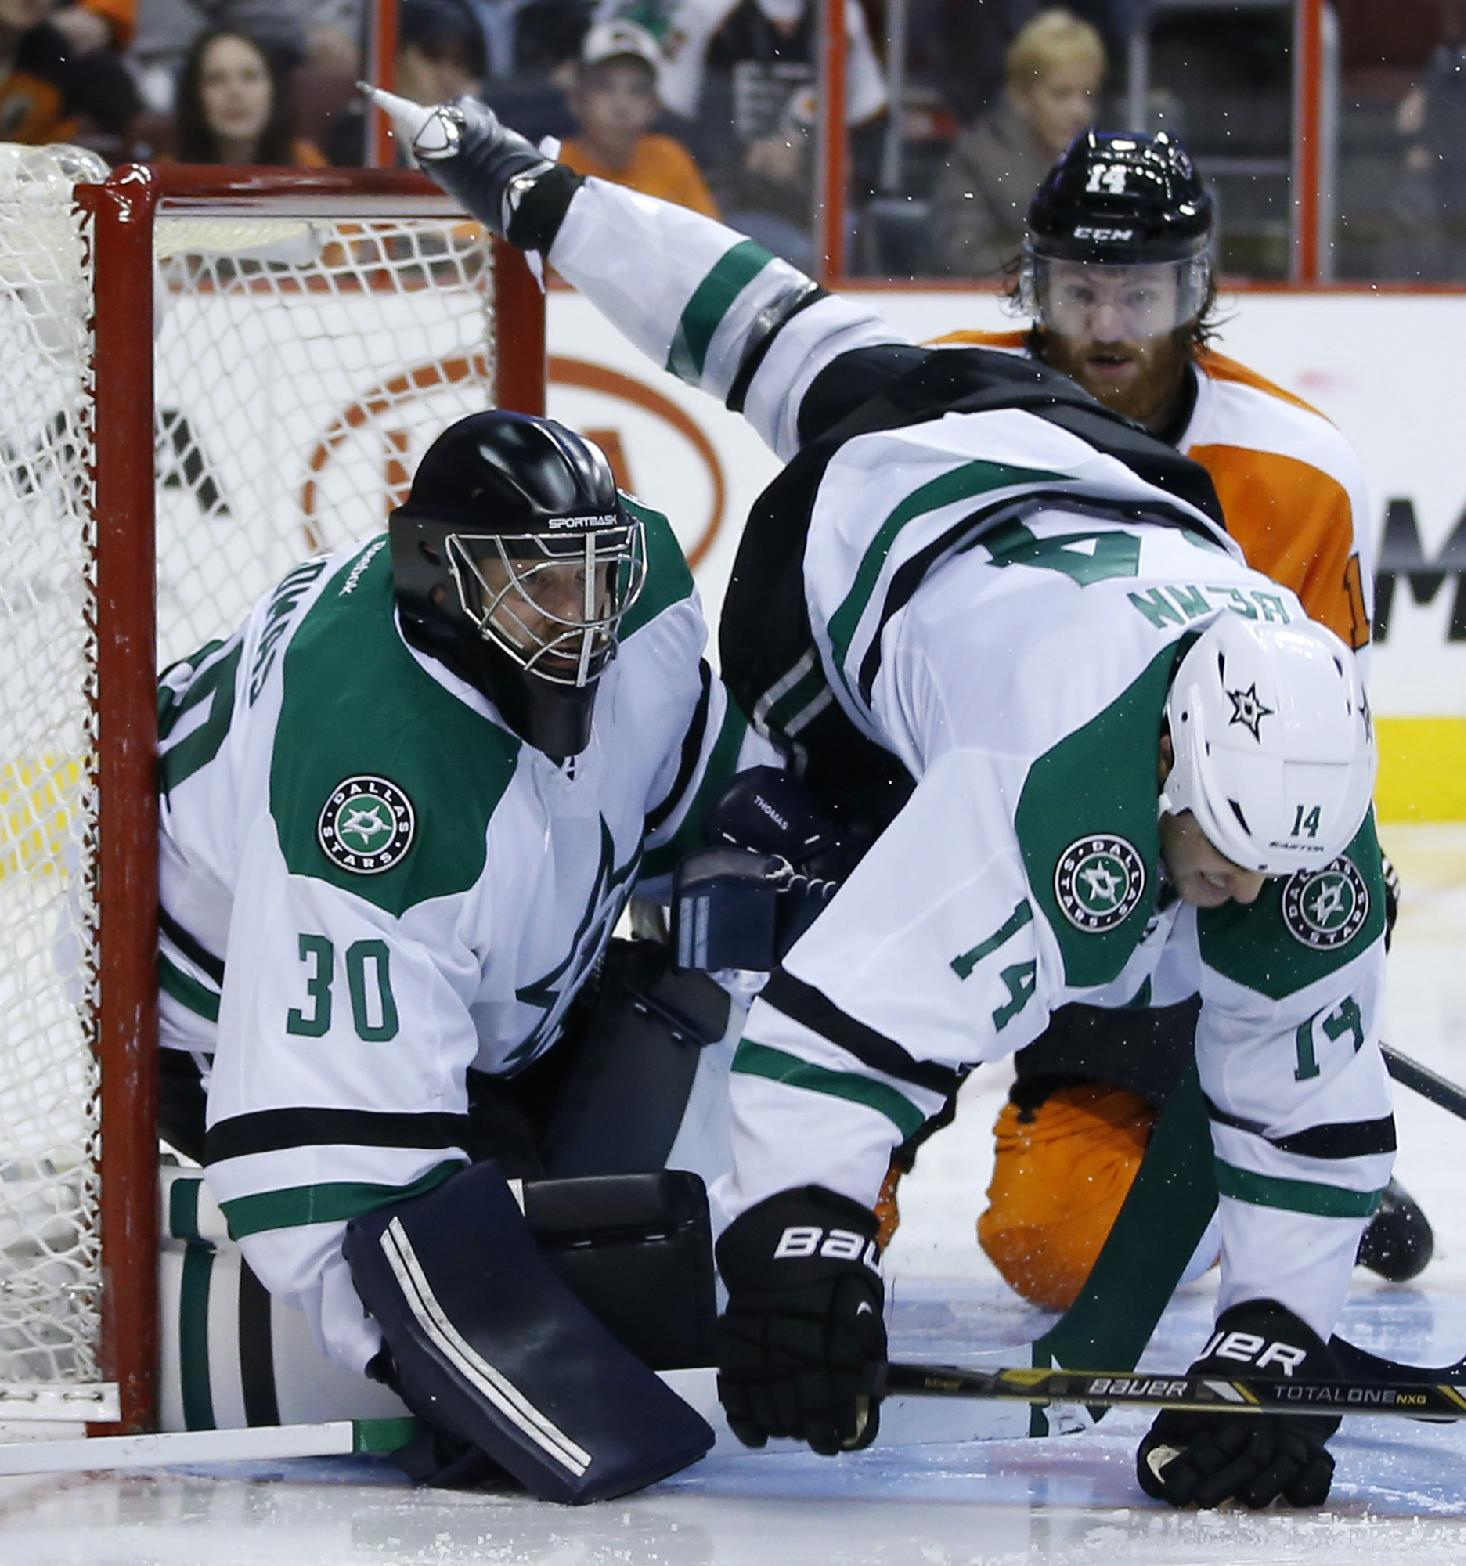 Dallas Stars' Jamie Benn (14) flies into goalie Tim Thomas (30) after colliding with Philadelphia Flyers' Sean Couturier (14) during the second period of an NHL hockey game, Thursday, March 20, 2014, in Philadelphia